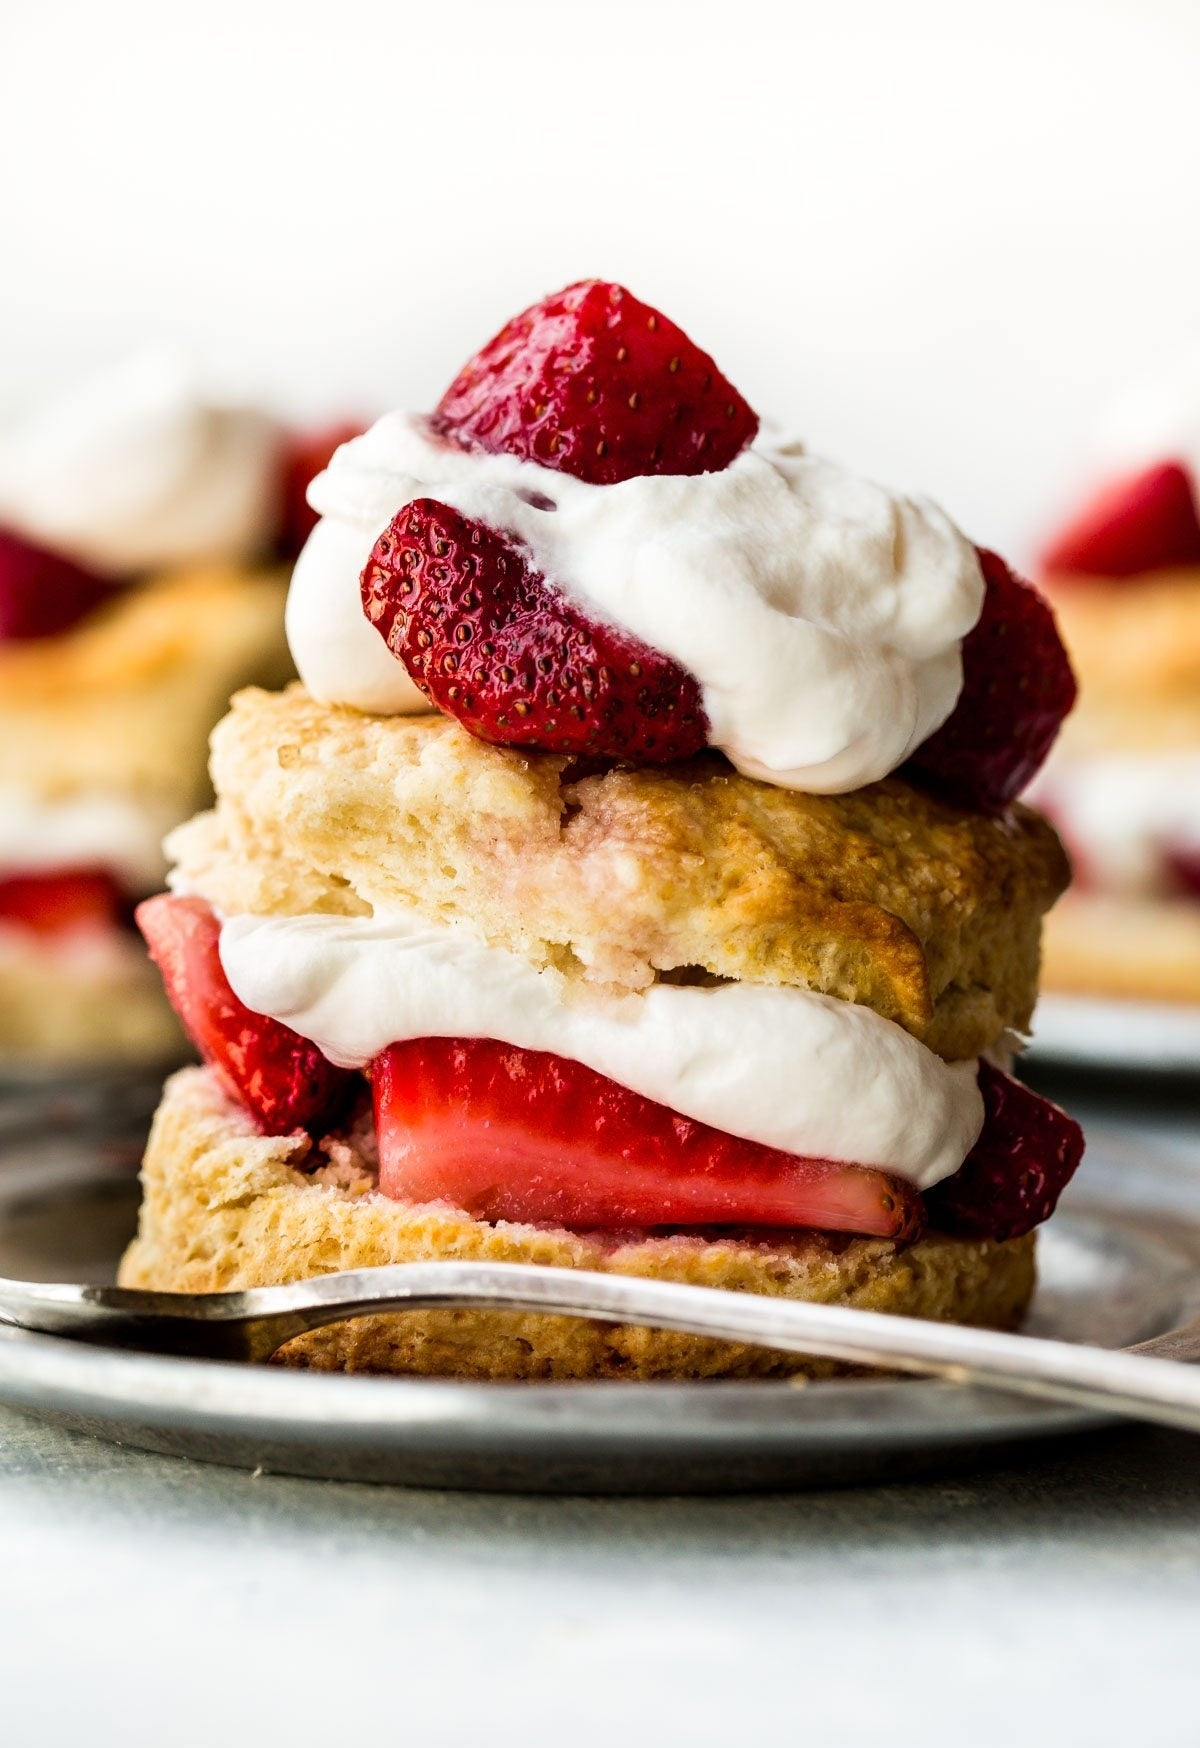 Creamy Desserts: Strawberry Shortcake